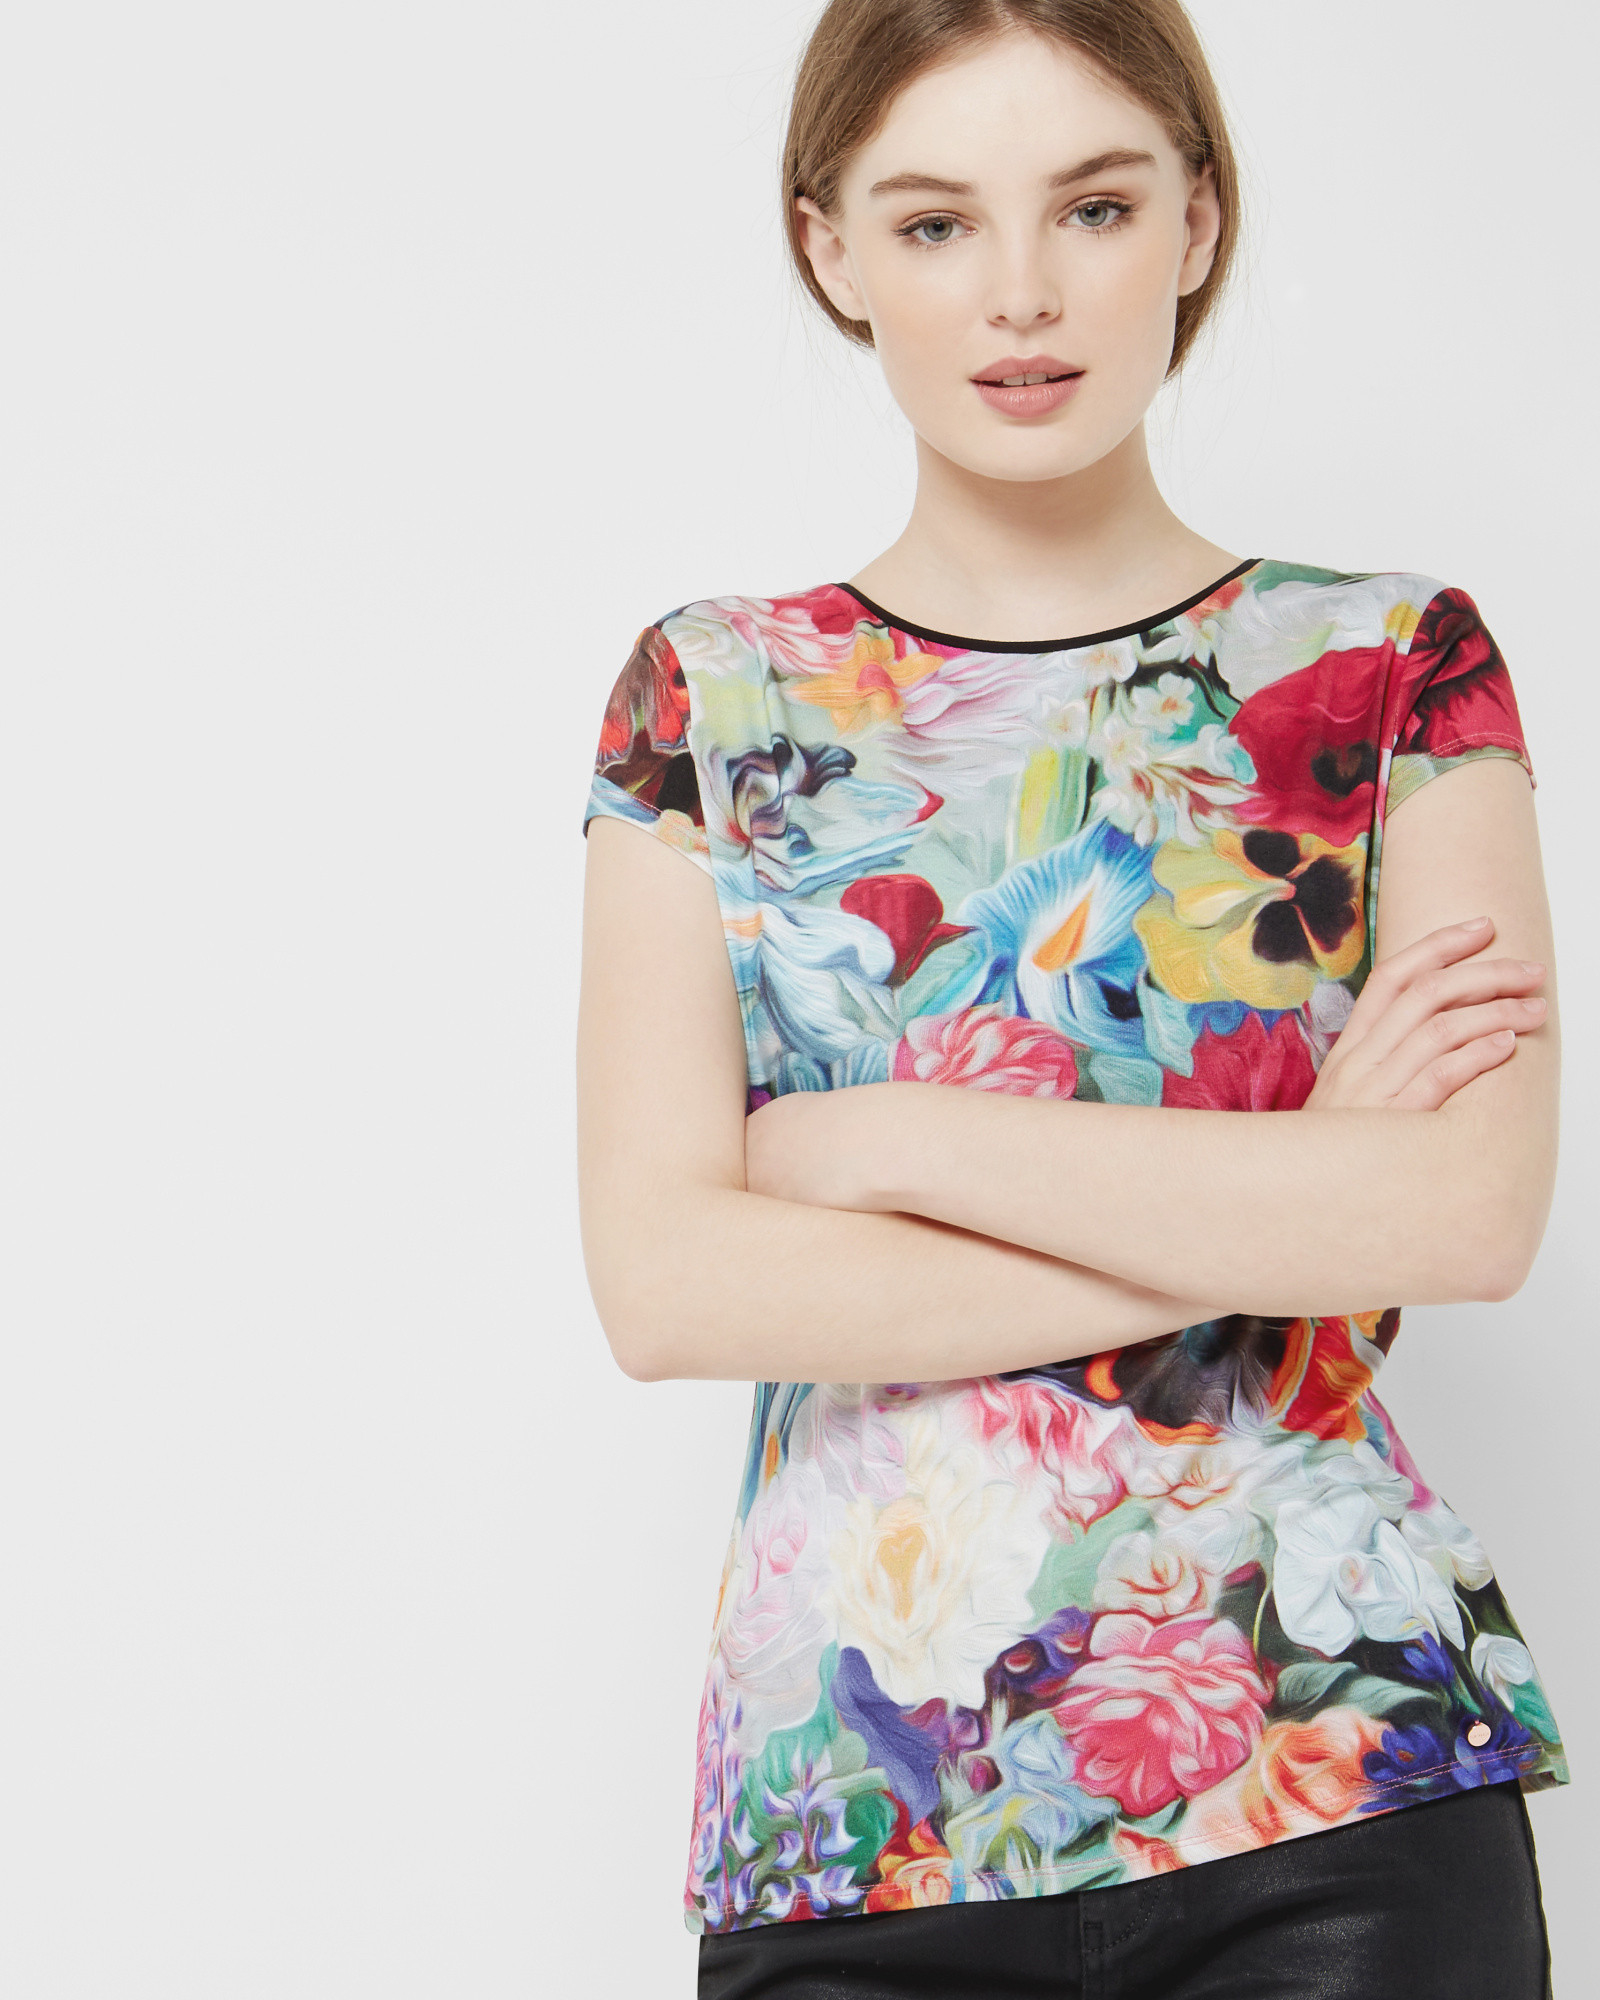 Ted baker floral swirl t shirt lyst for Ted baker floral shirt